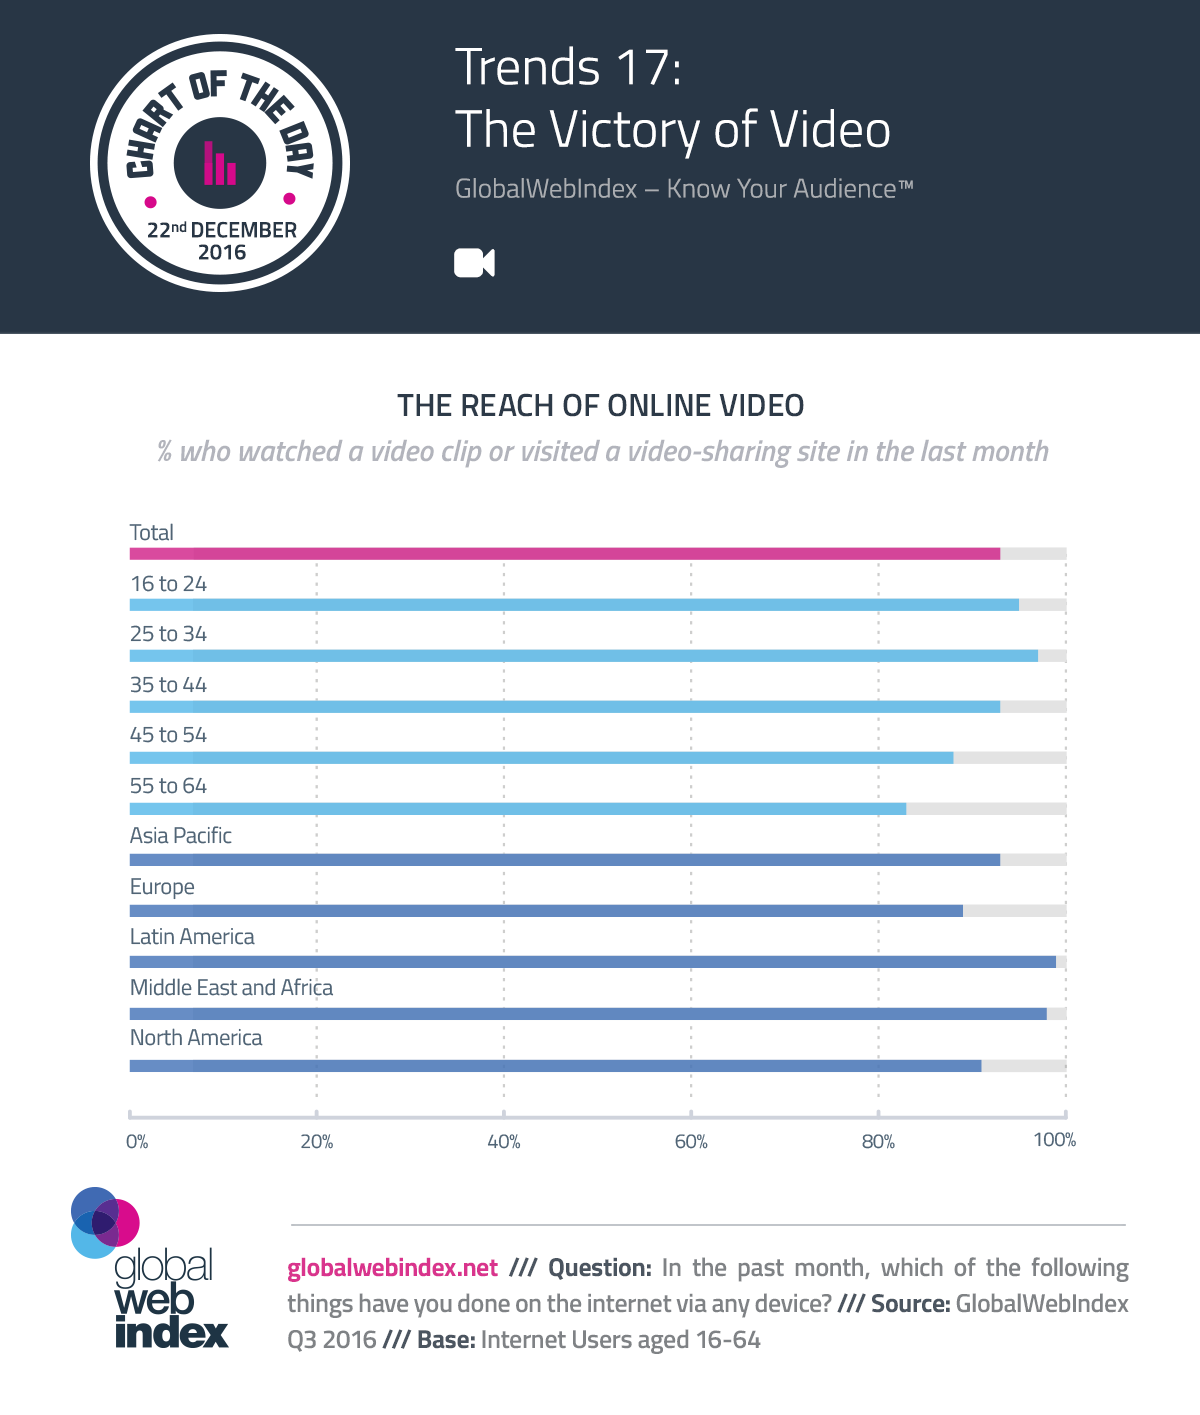 Trends 17: The Victory of Video